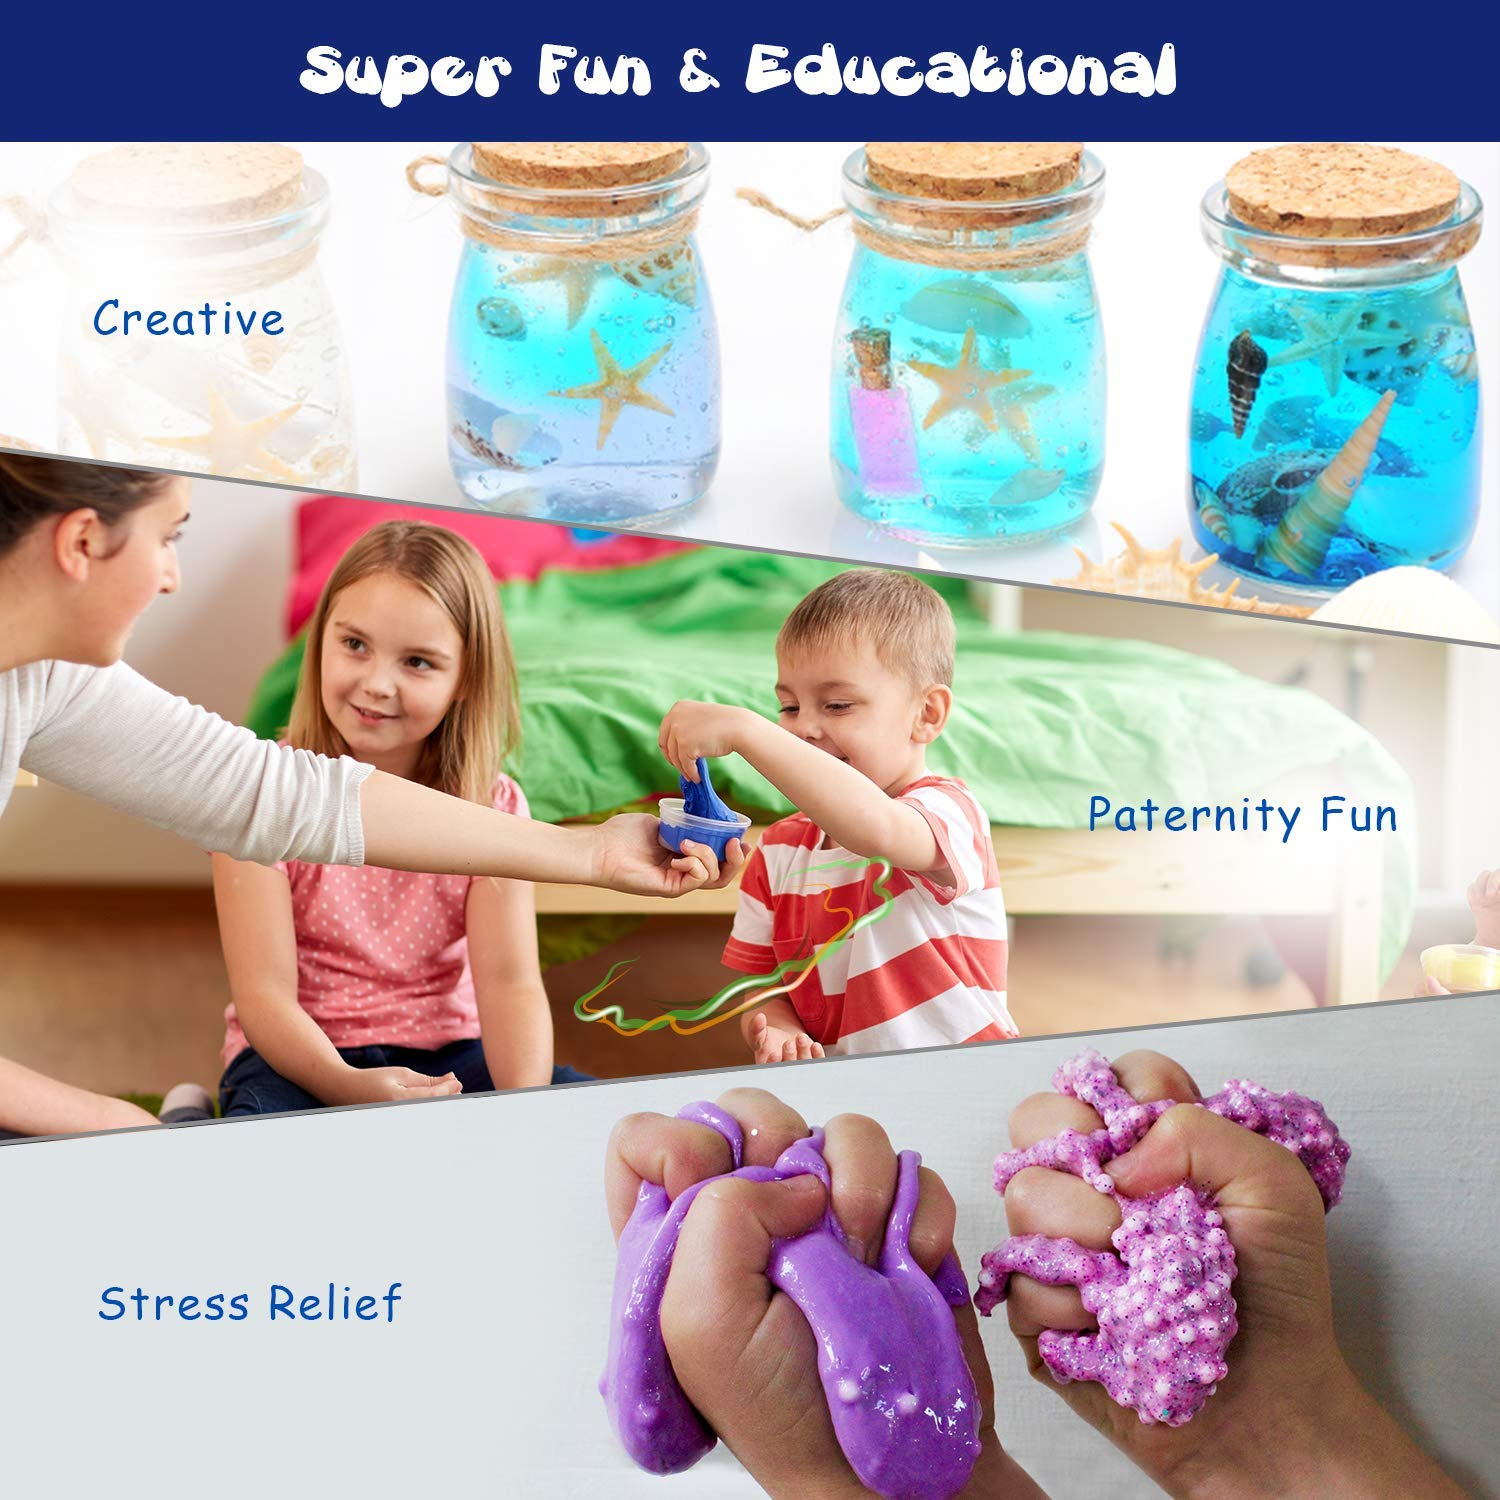 Super Soft Sludge Toy with Scary Skeleton Slime Wet Stress /& Anxiety Relief and Galaxy Slime 6PCS Joyjoz Halloween Slime Party Favor for Kids 6PCS Boys Non Sticky Galaxy Slime Kits for Girls